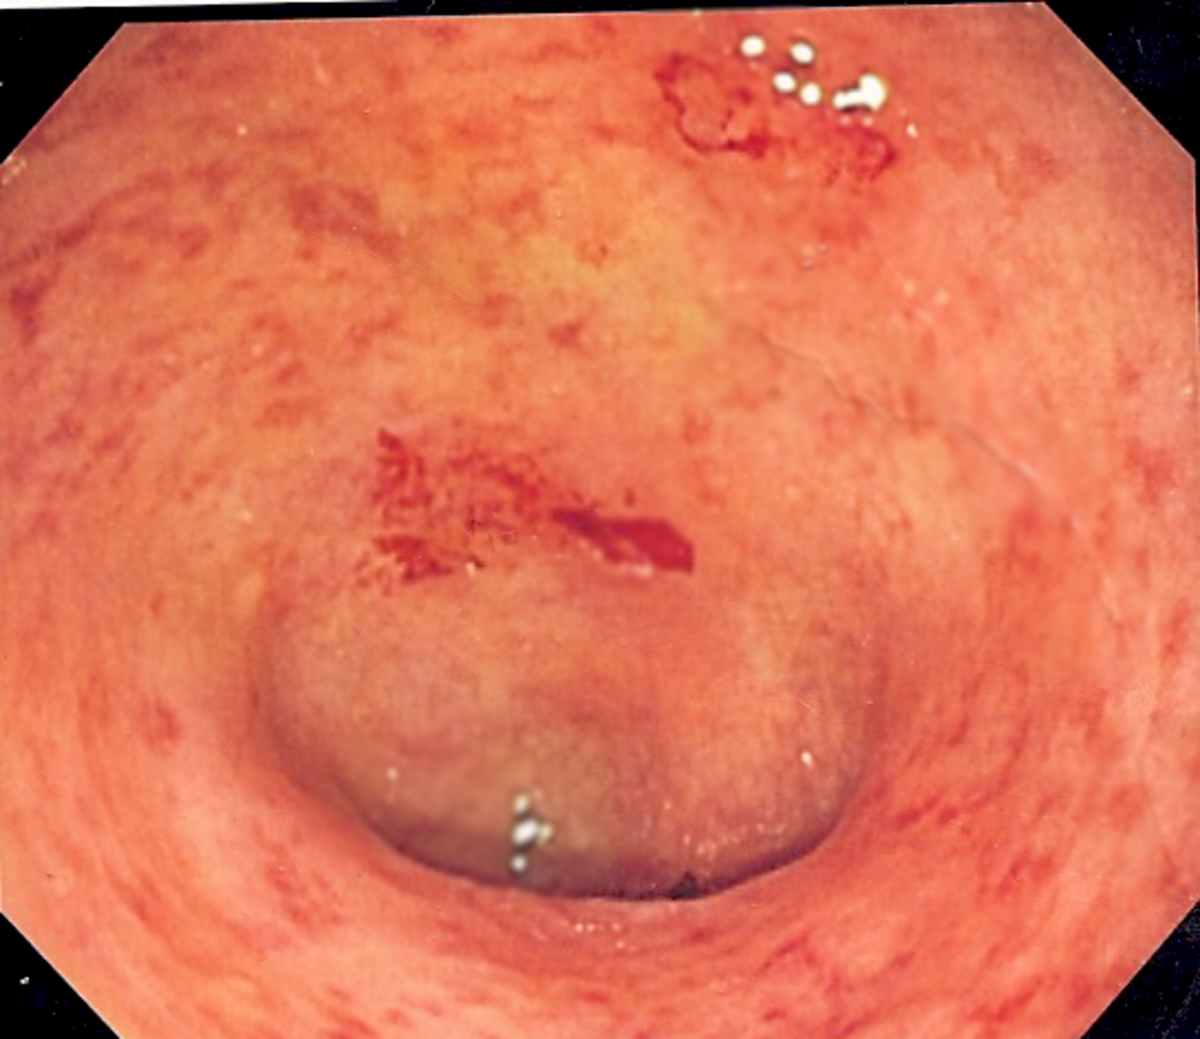 Ulcerations in ulcerative colitis. With IBS, there will be no ulcerations.